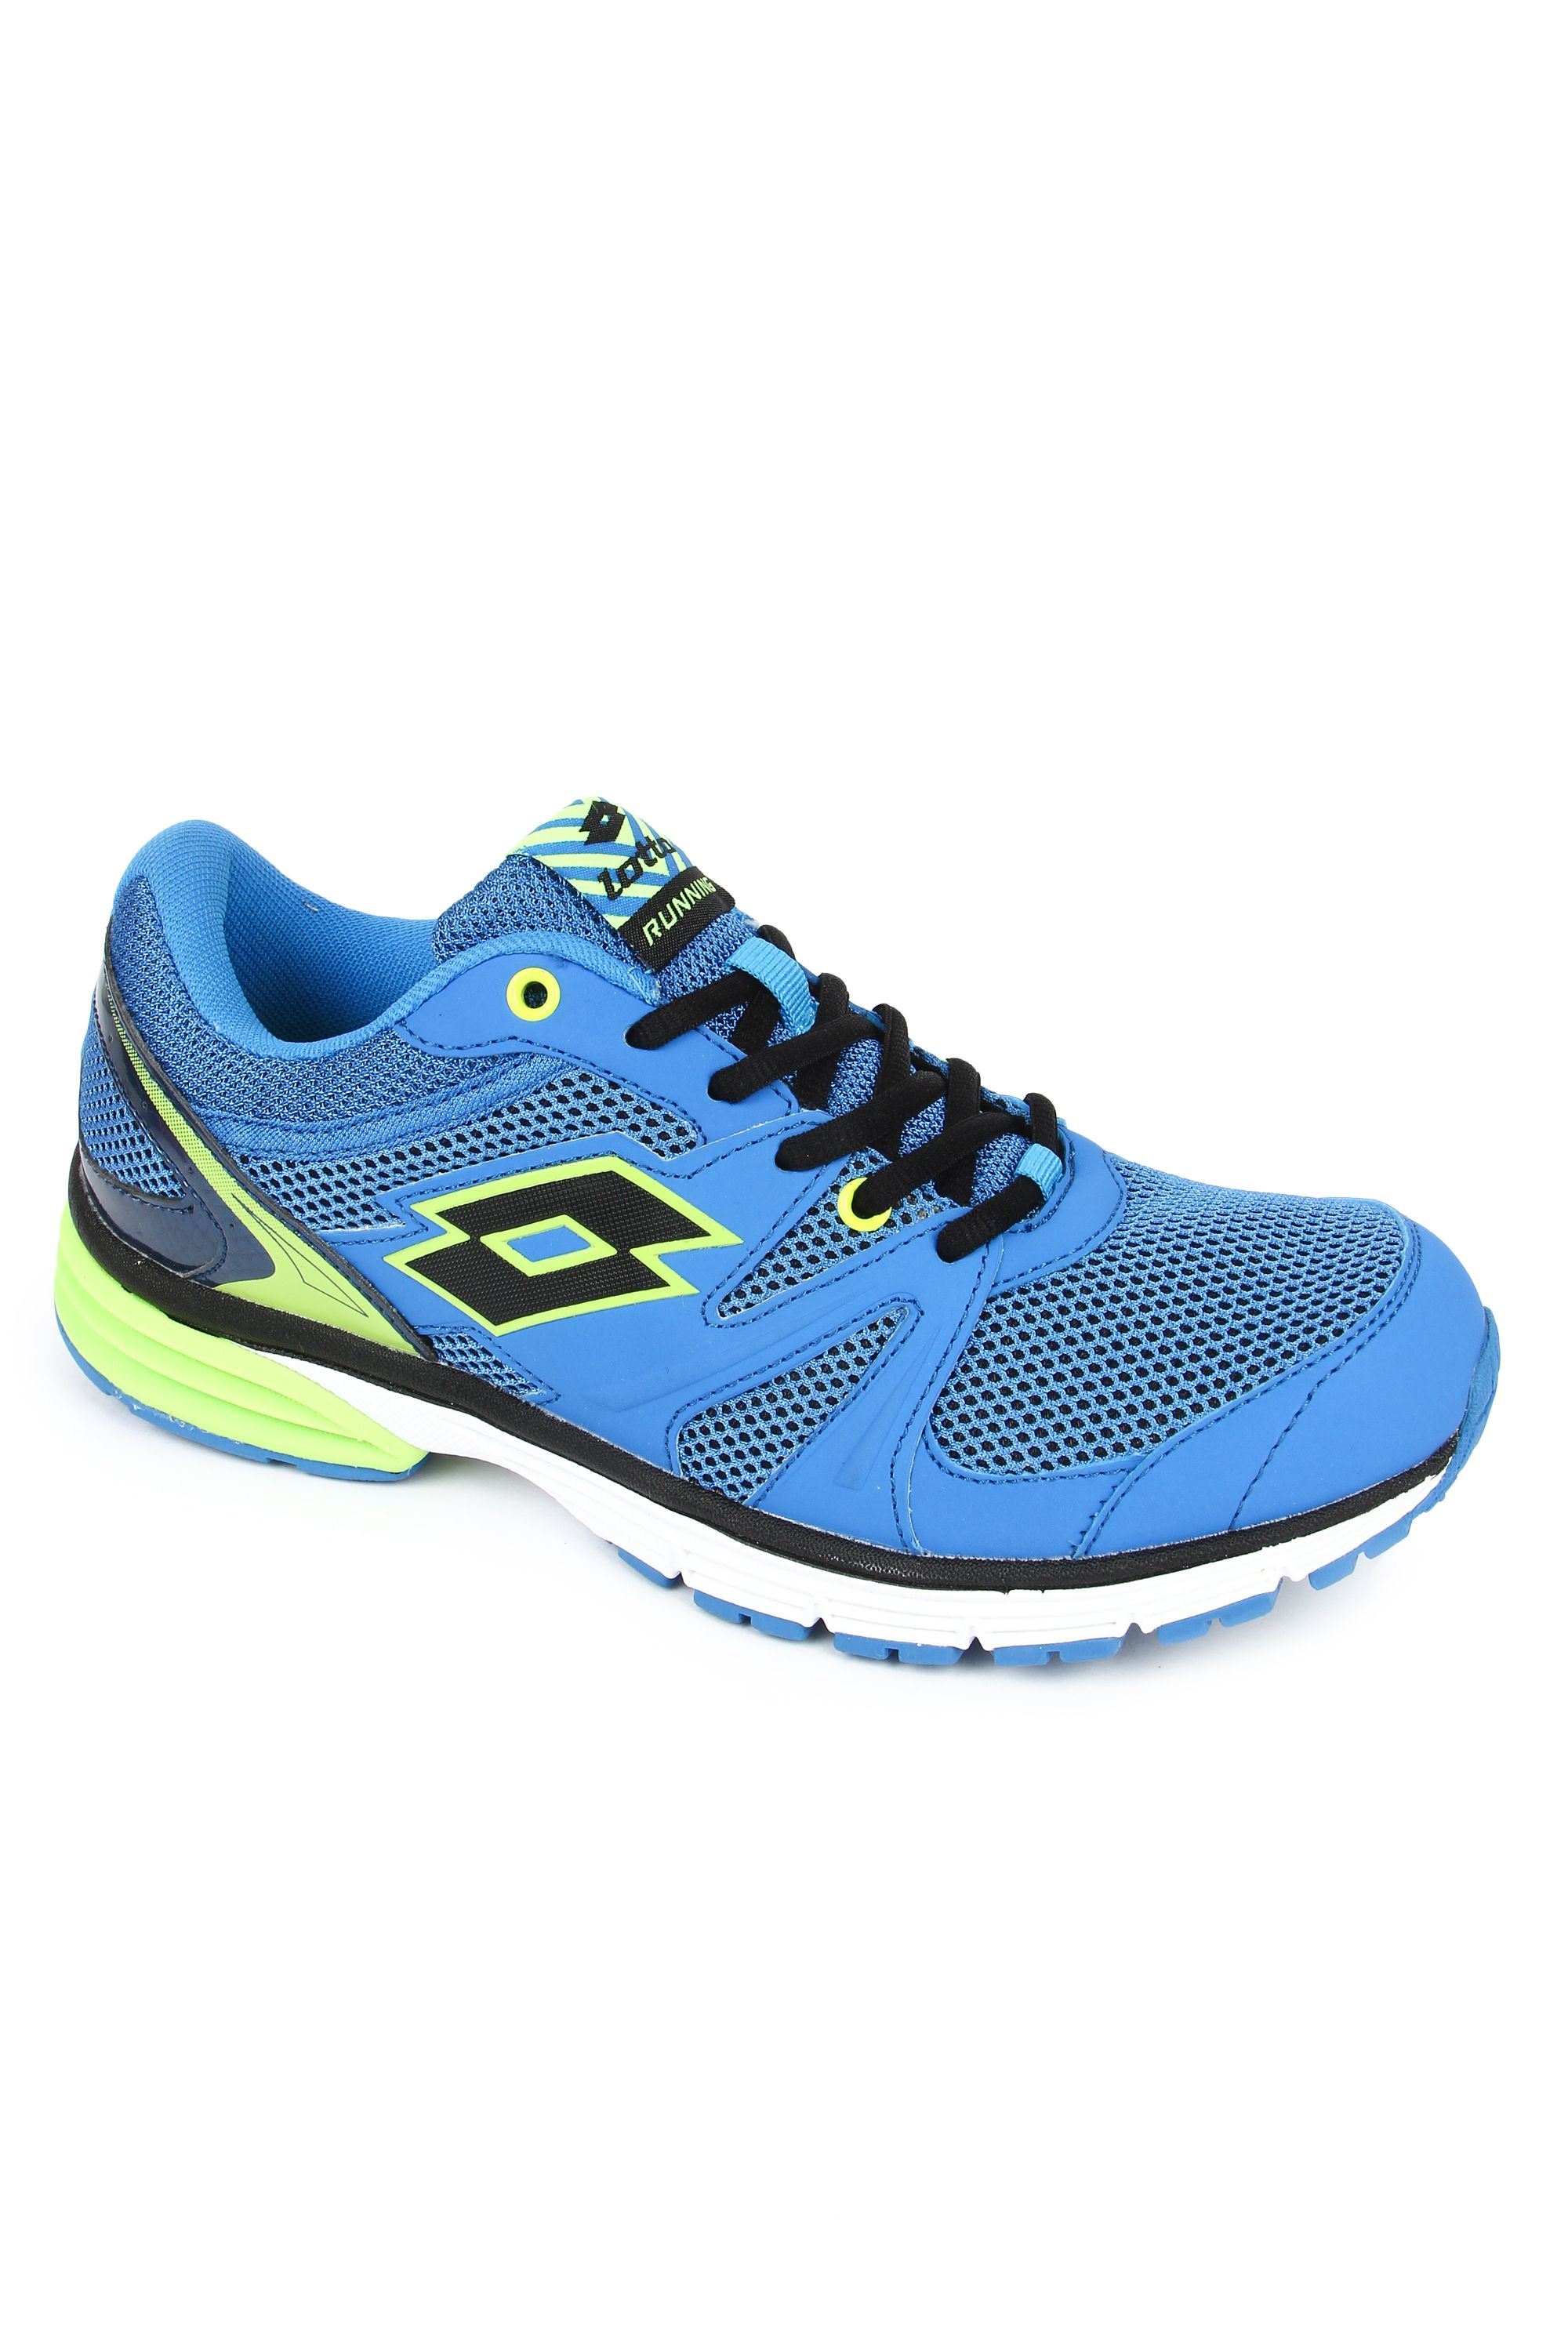 The Santiago running shoe by lotto, a  lightweight shoe with a lightweight mesh making it breathable . Has a durable , comfortable & soft cushioning . A reliable running shoe with striking colour combination making it a good casual wear as well. Improves both performance & looks.